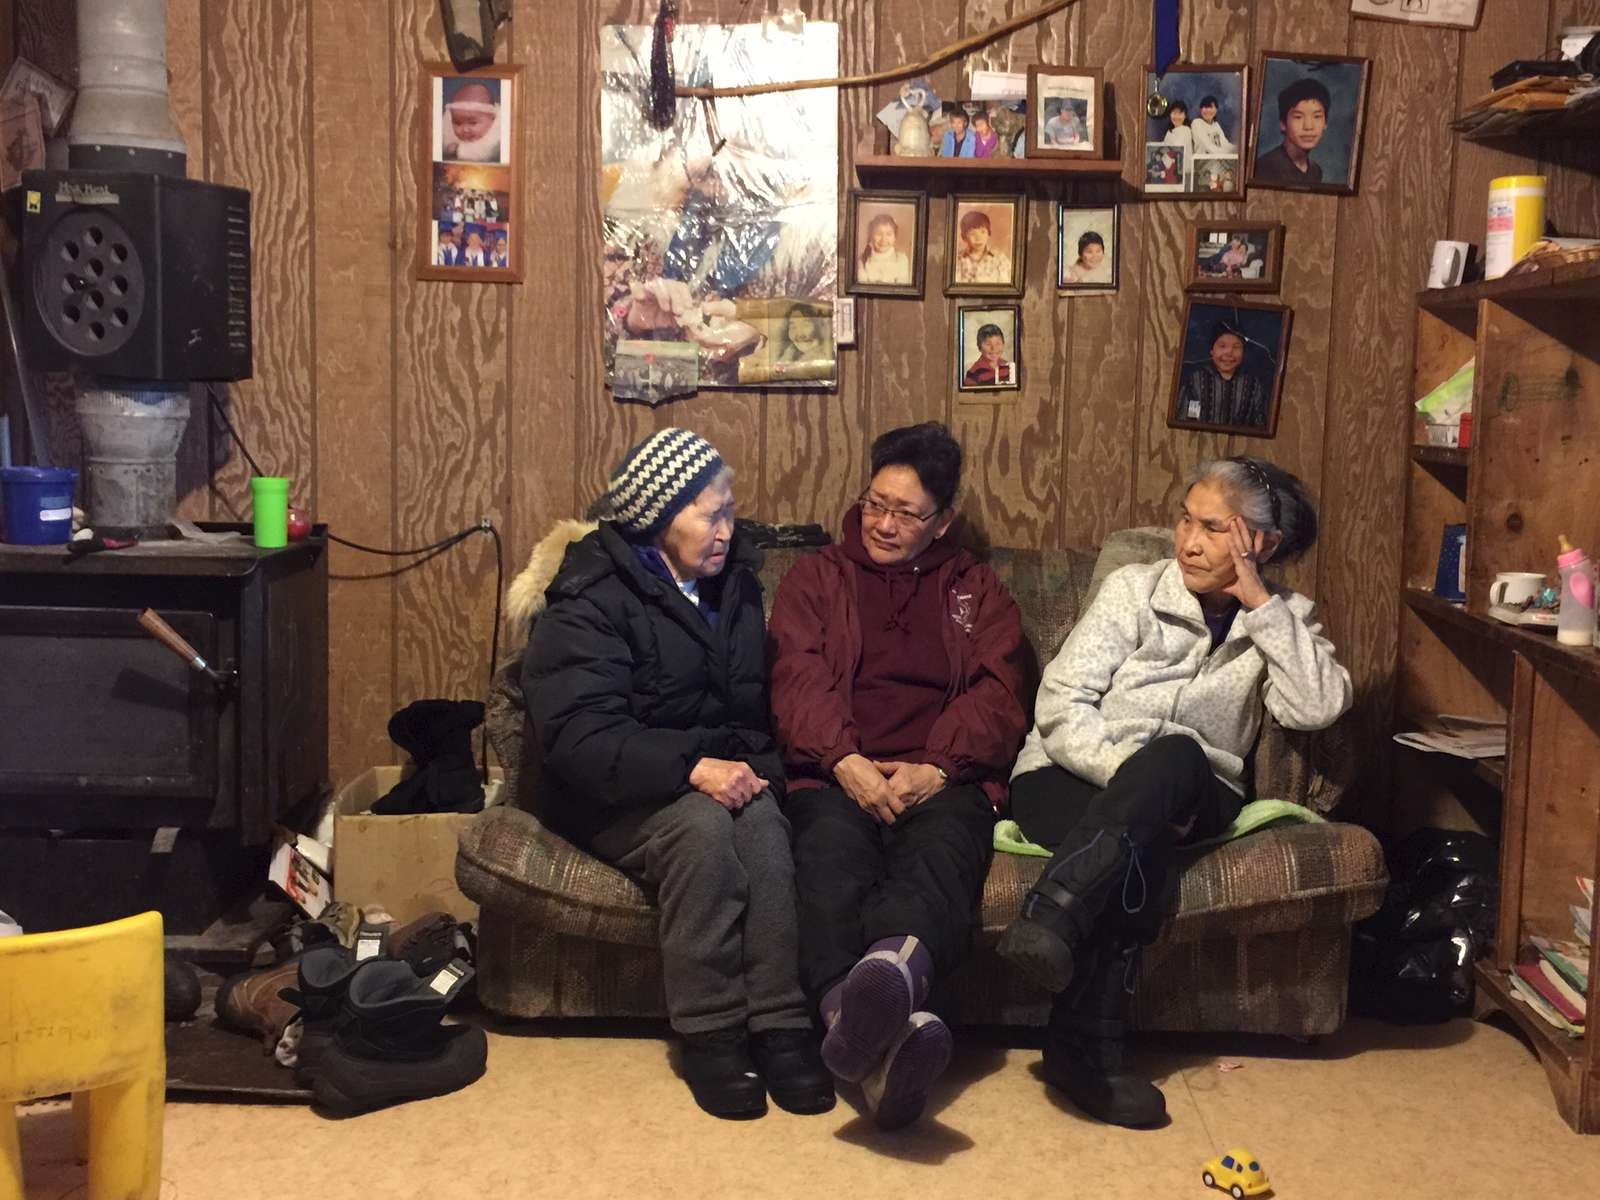 Mardy Hanson, center, of the Calricaraq team talks with family of the victim and perpetrator.